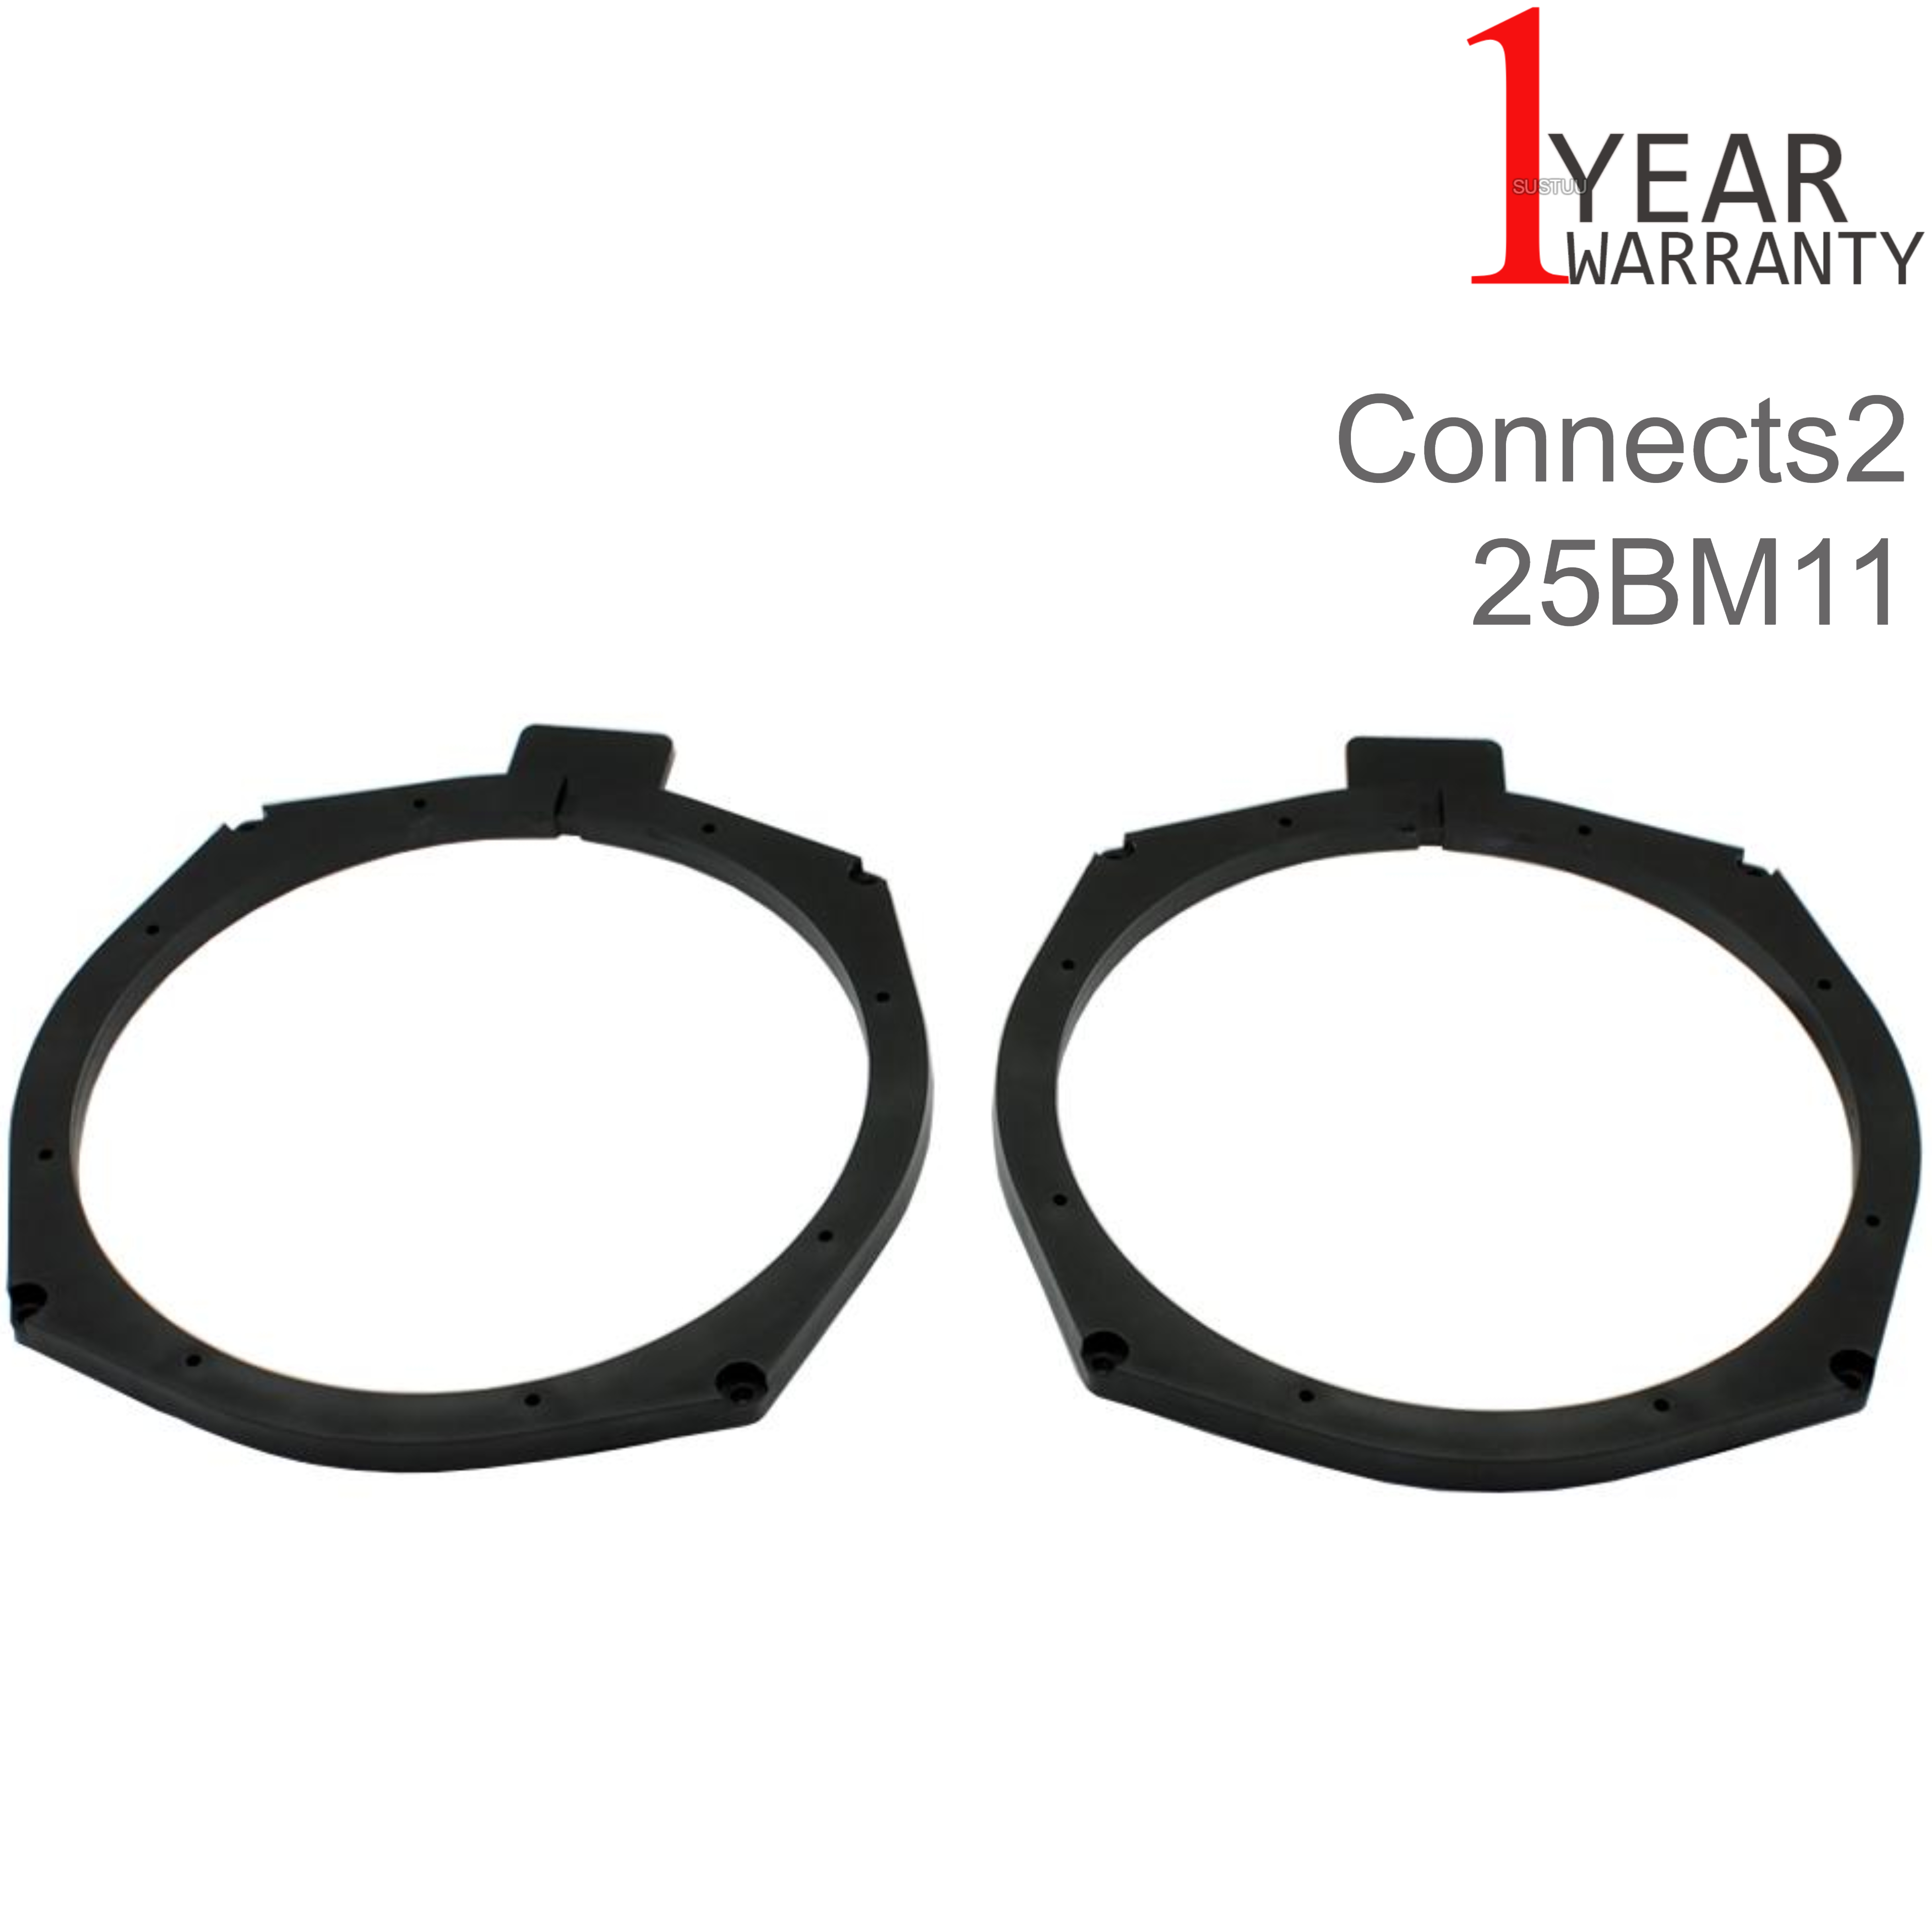 Connects2 204mm Rear Door Speaker Adapter | For BMW 5-SeriesF10/F11 2011> Car | Black